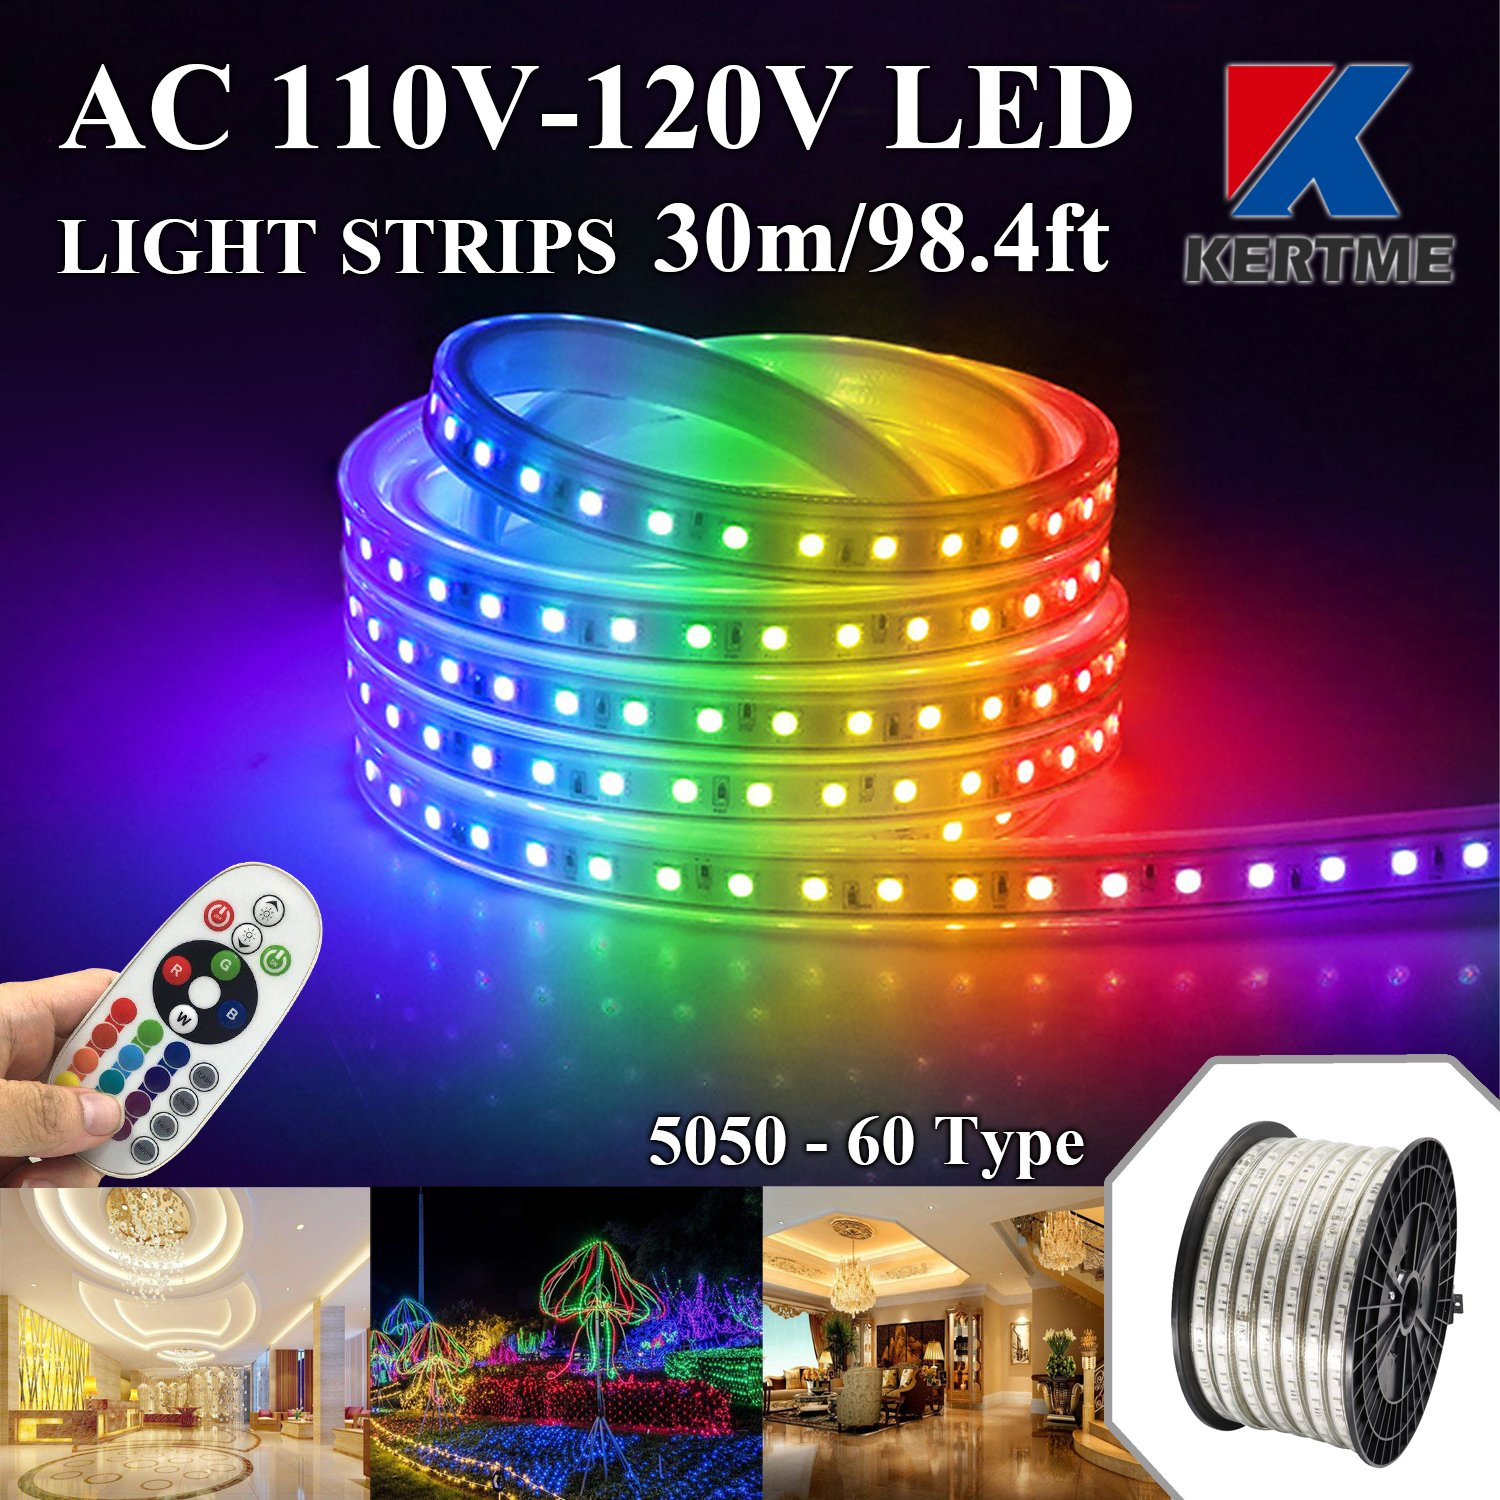 KERTME 5050-60 Type AC 110-120V RGB LED Strip Lights, Flexible/Waterproof/Dimmable/Multi-Colors/Multi-Modes LED Rope Light + 24 Keys Remote for Home/Garden/Building Decoration (98.4ft/30m, RGB)